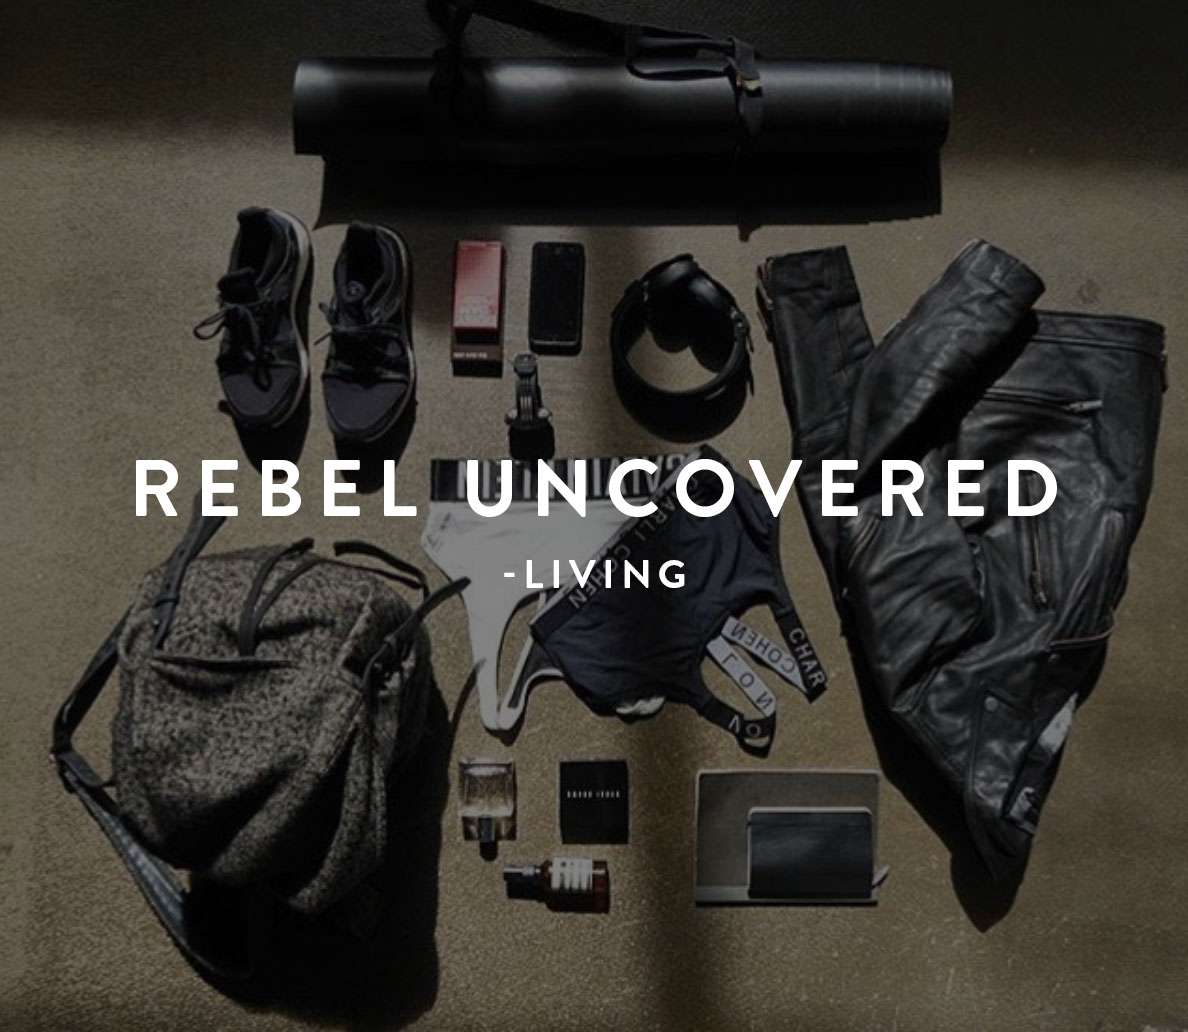 Rebel Uncovered